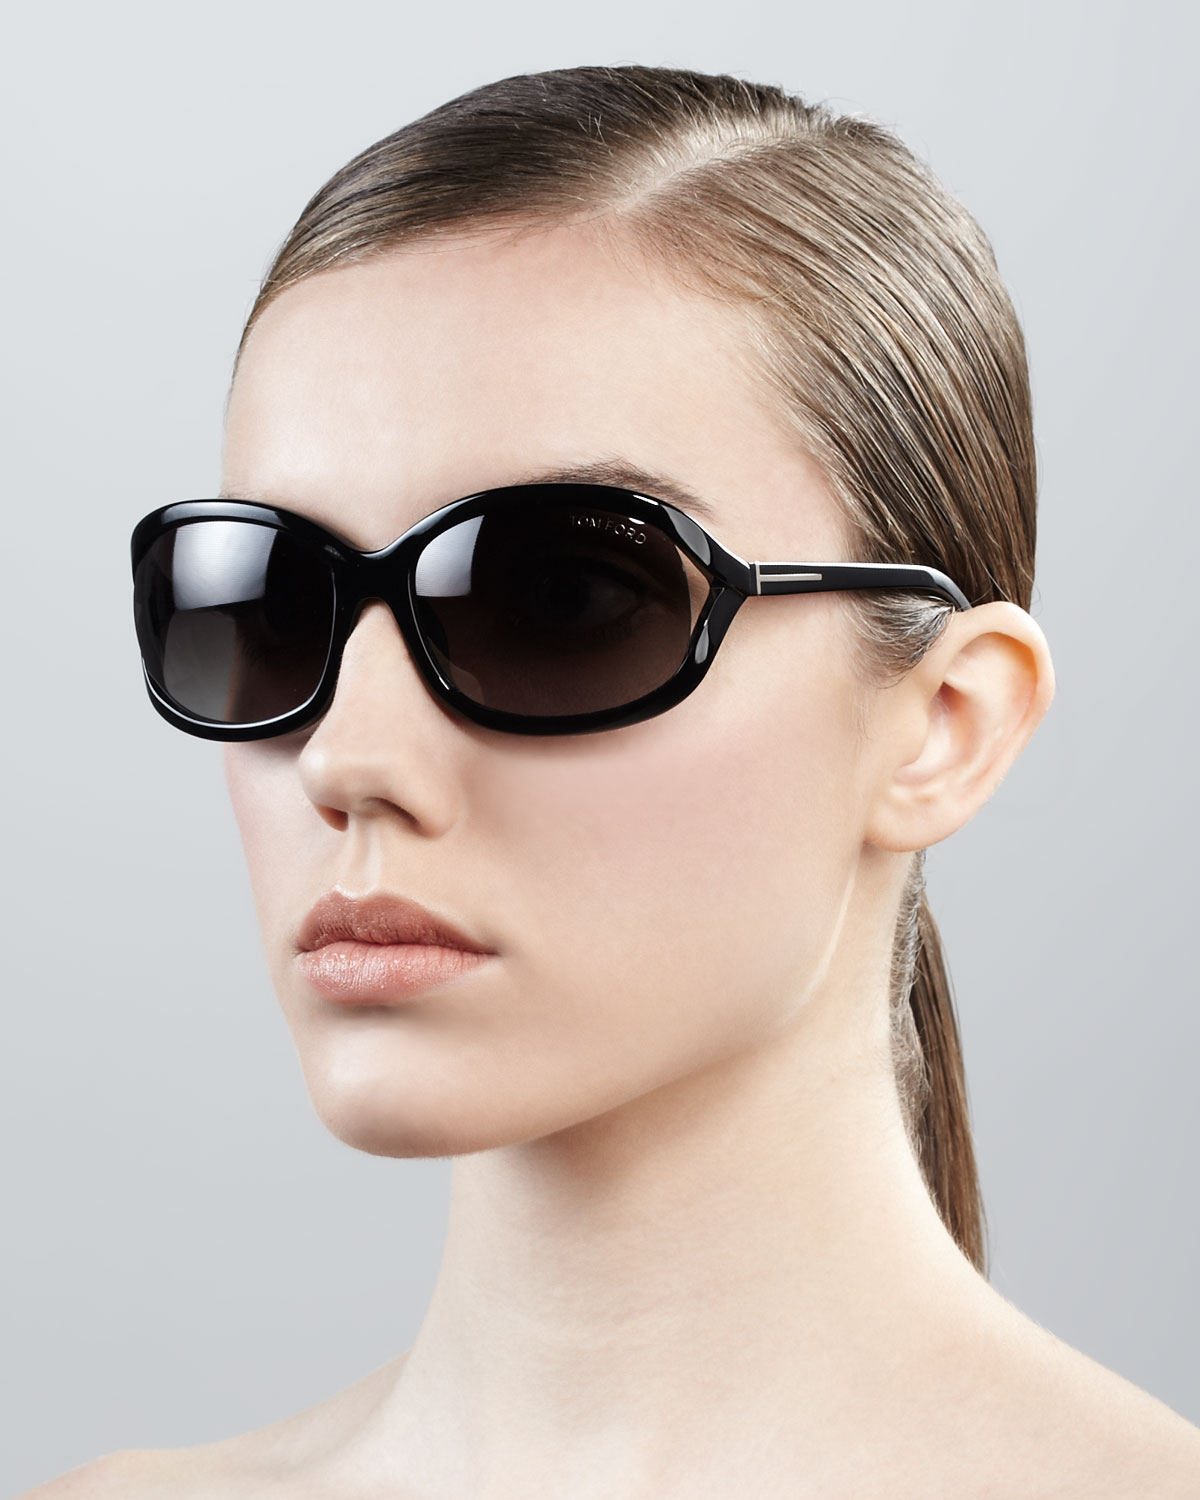 96b4c2ef7c2b Lyst - Tom Ford Vivienne Rounded Sunglasses Shiny Black in Black